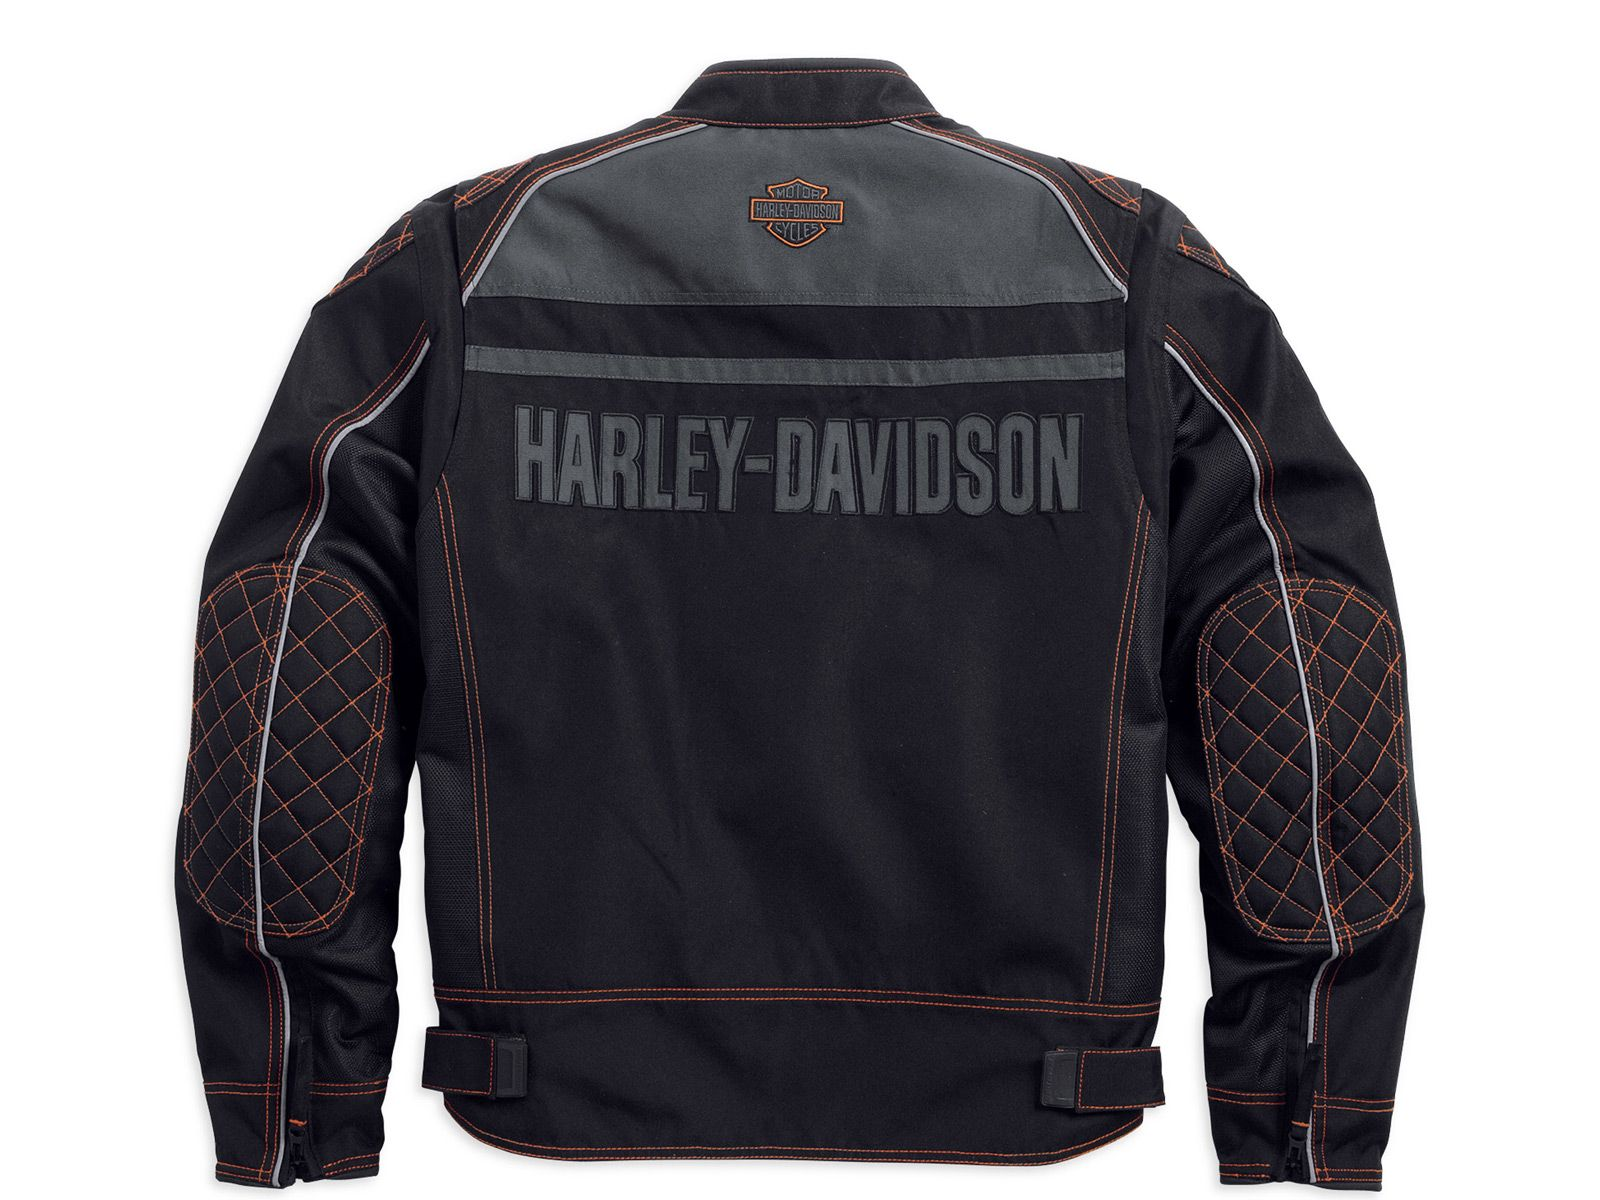 98554 14vm harley davidson tailgater textile mesh jacke. Black Bedroom Furniture Sets. Home Design Ideas